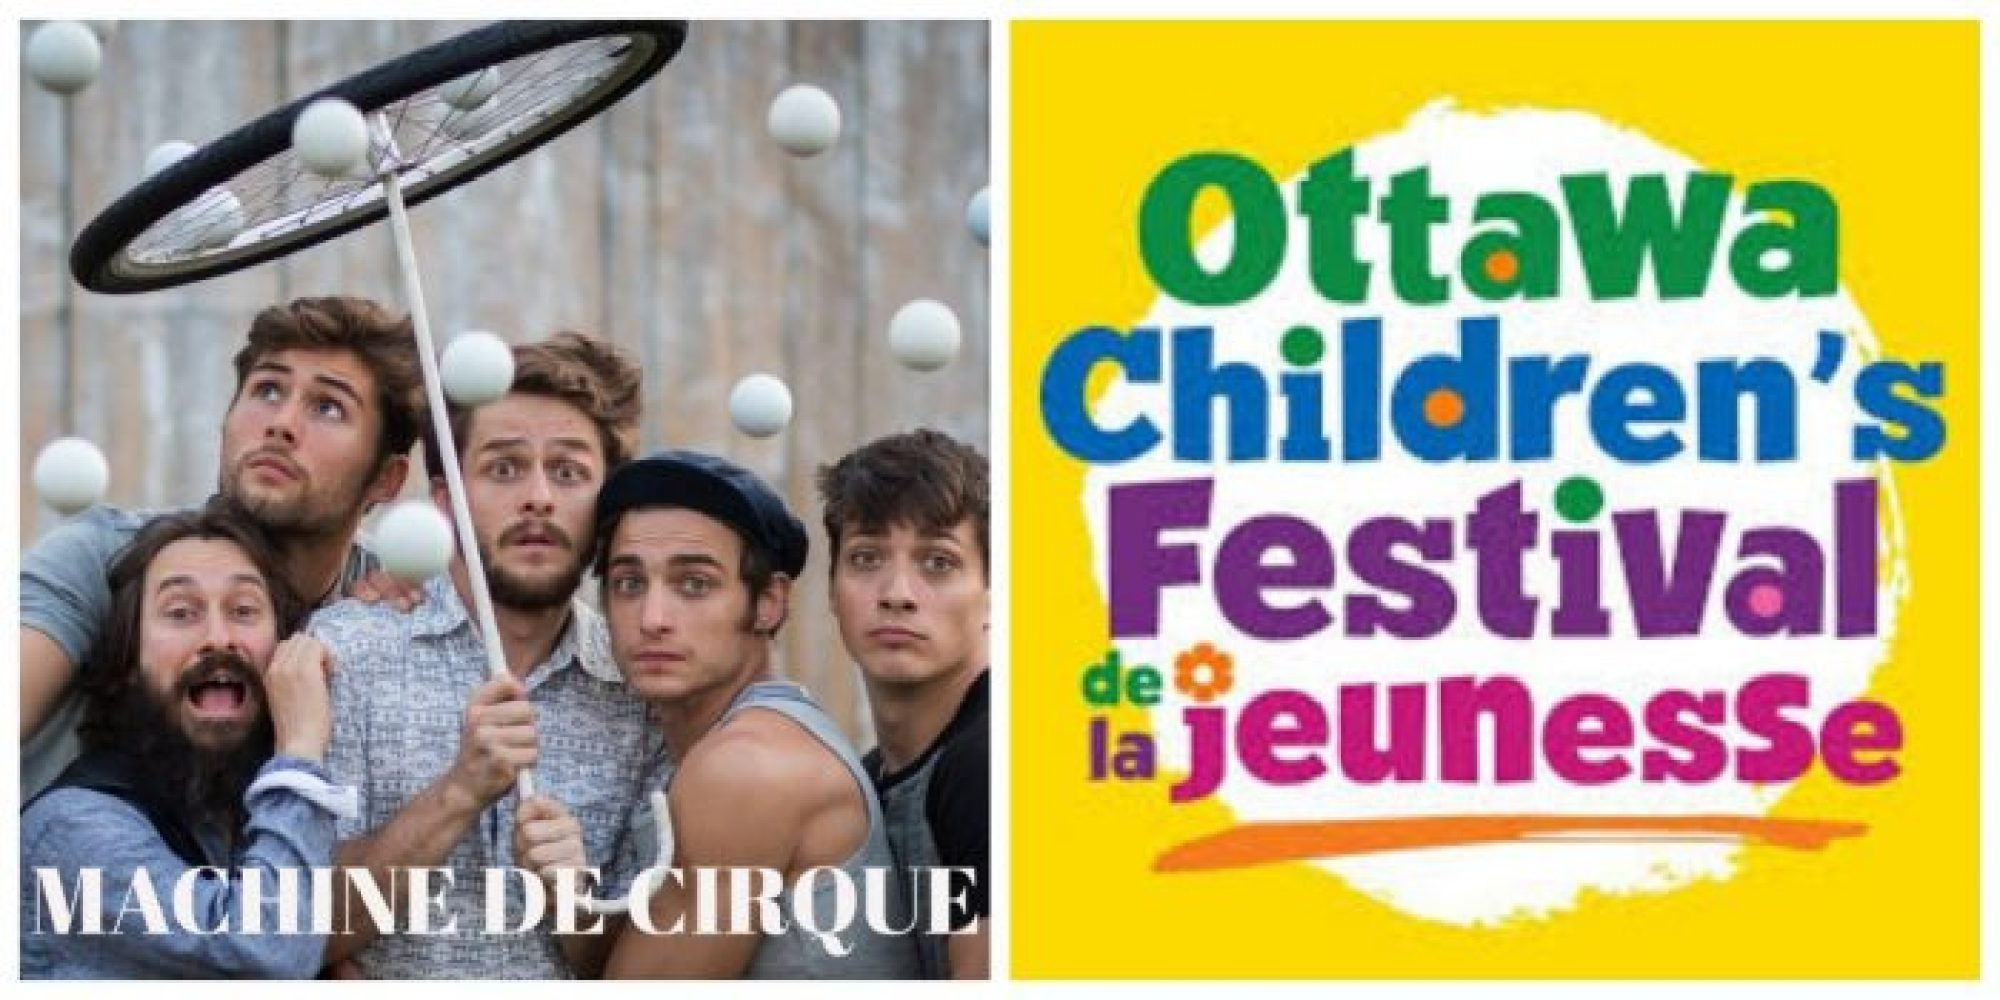 Machine De Cirque - Ottawa Children's Festival